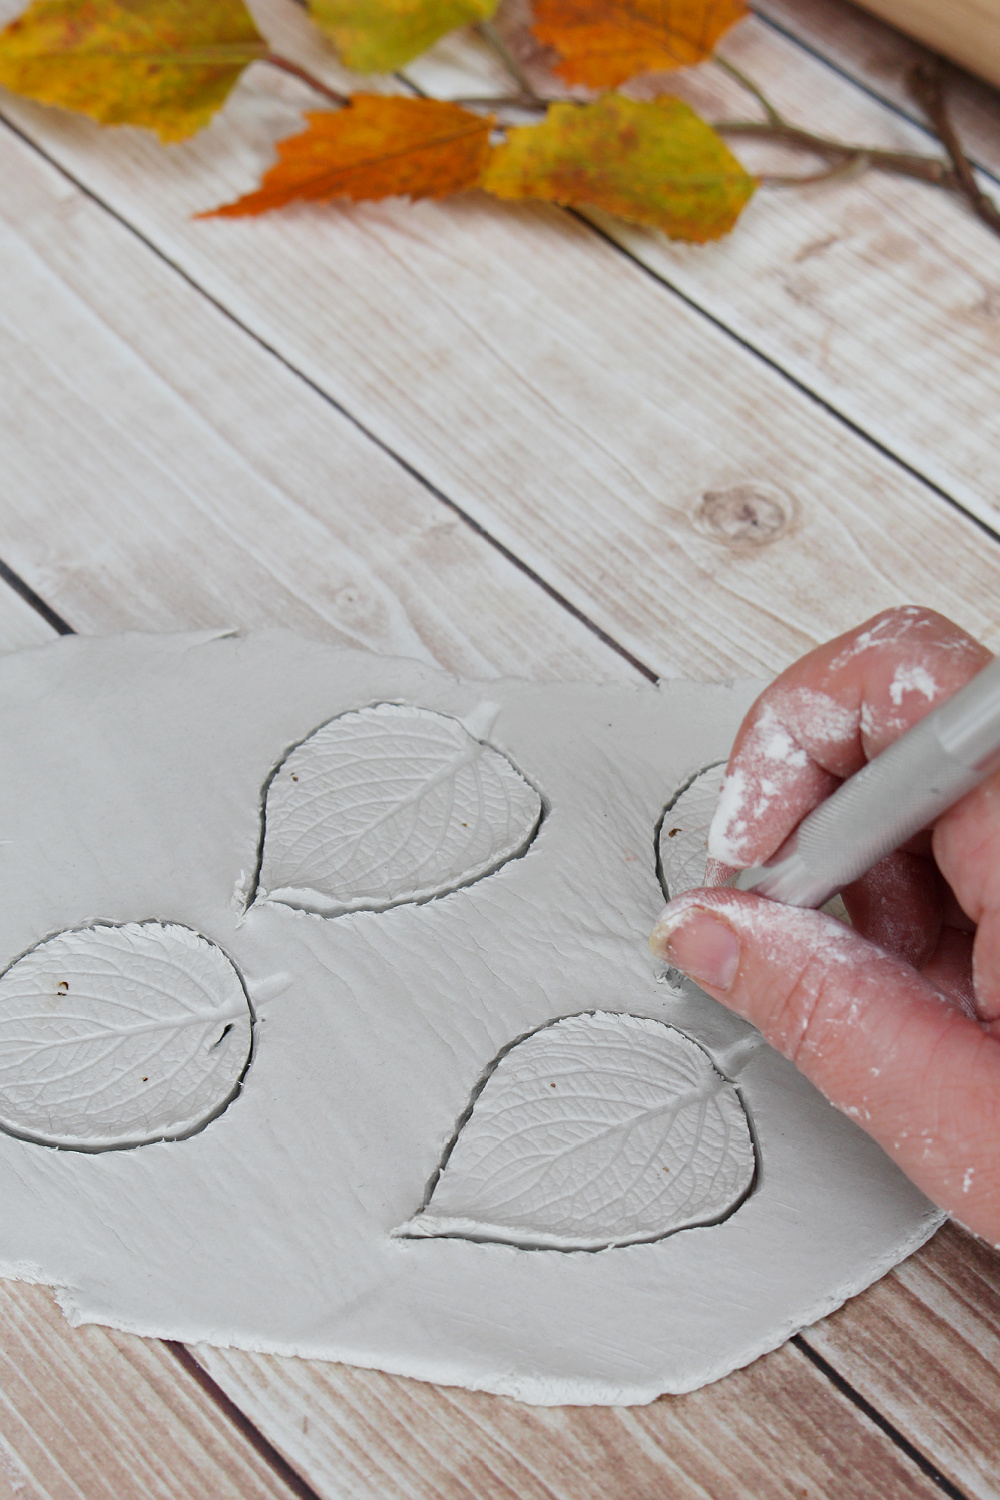 Air dry clay leaves being cut with an exacto knife.